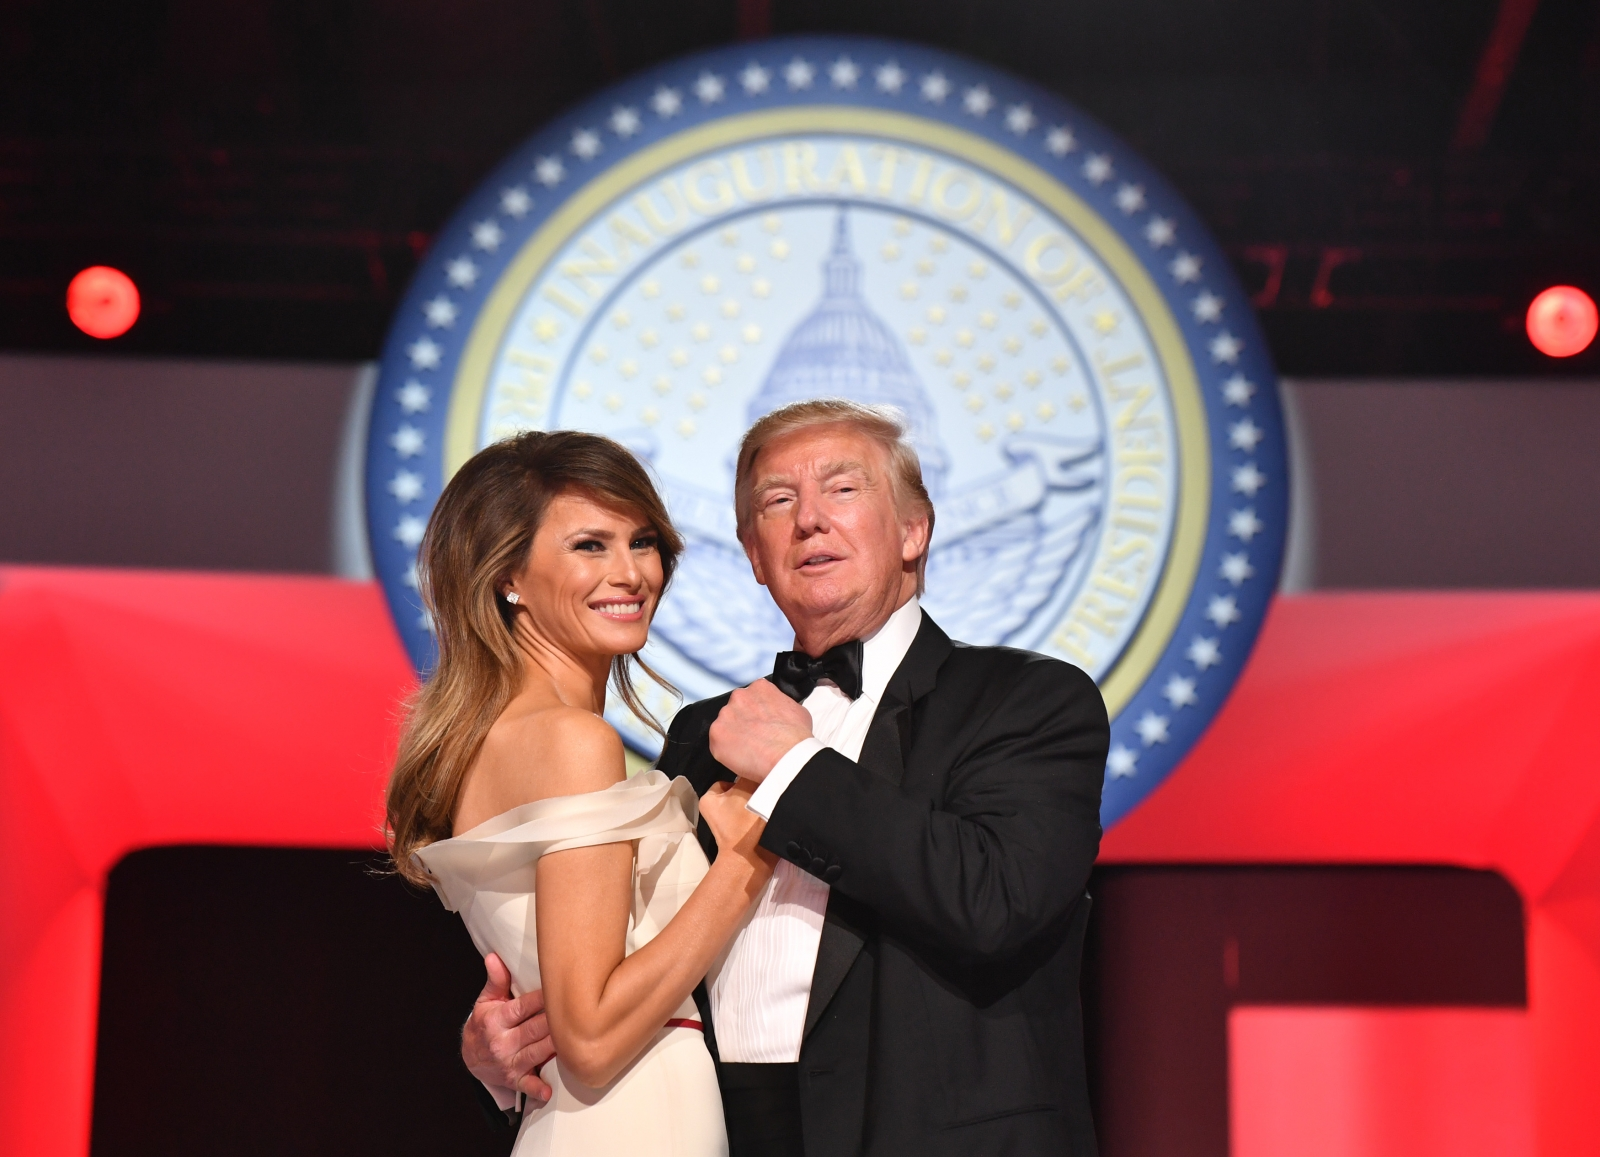 Melania Trump and Donald Trump 2017